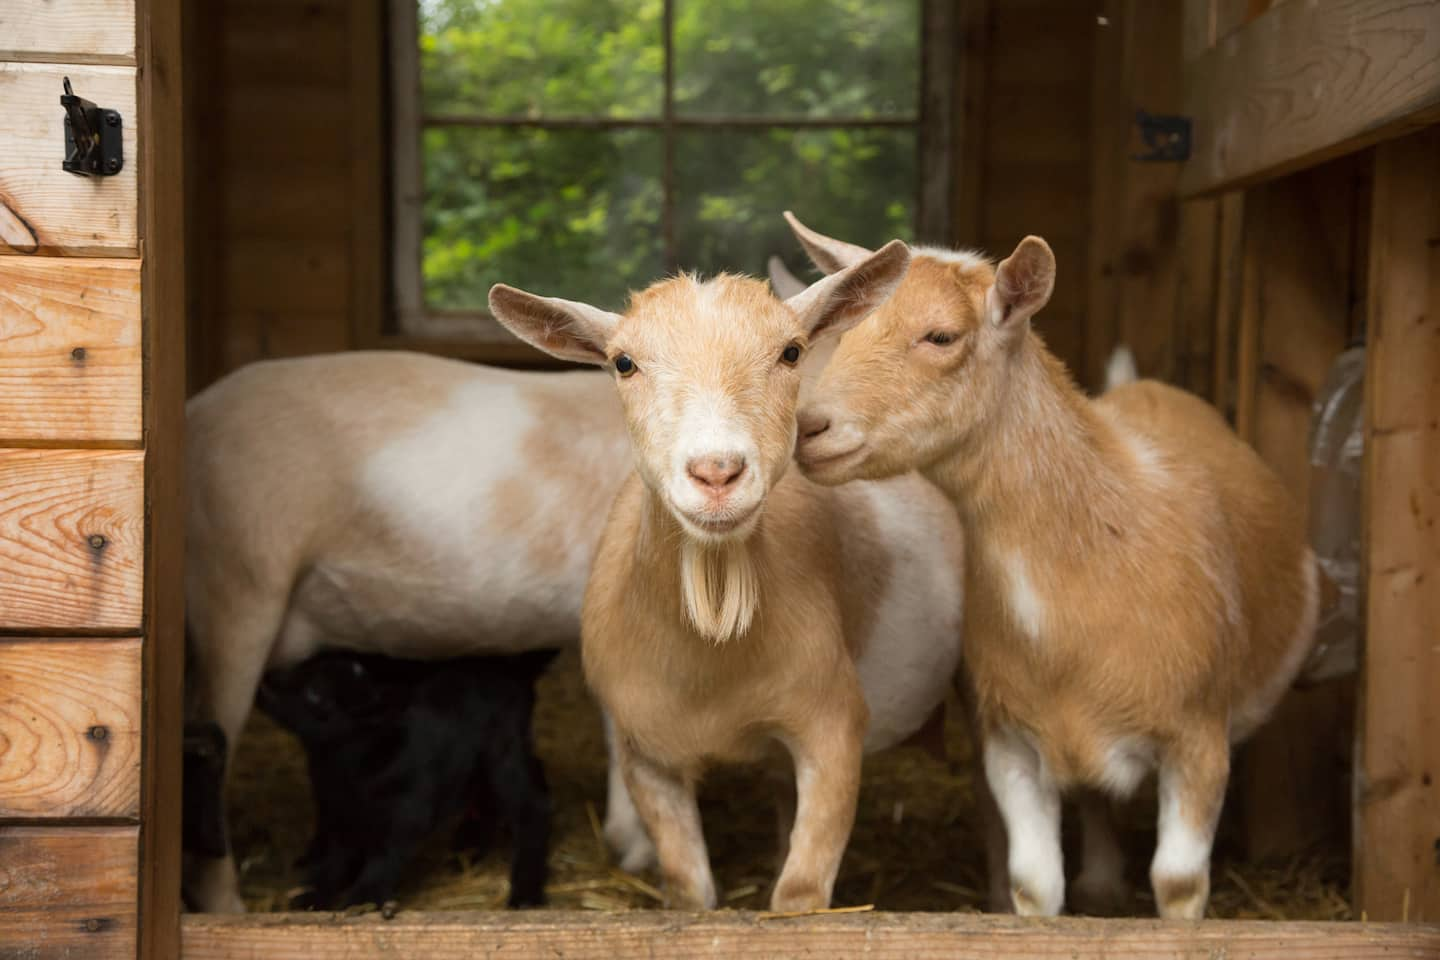 A Diy Goat Barn For Less Than 1 000 From Reclaimed Materials